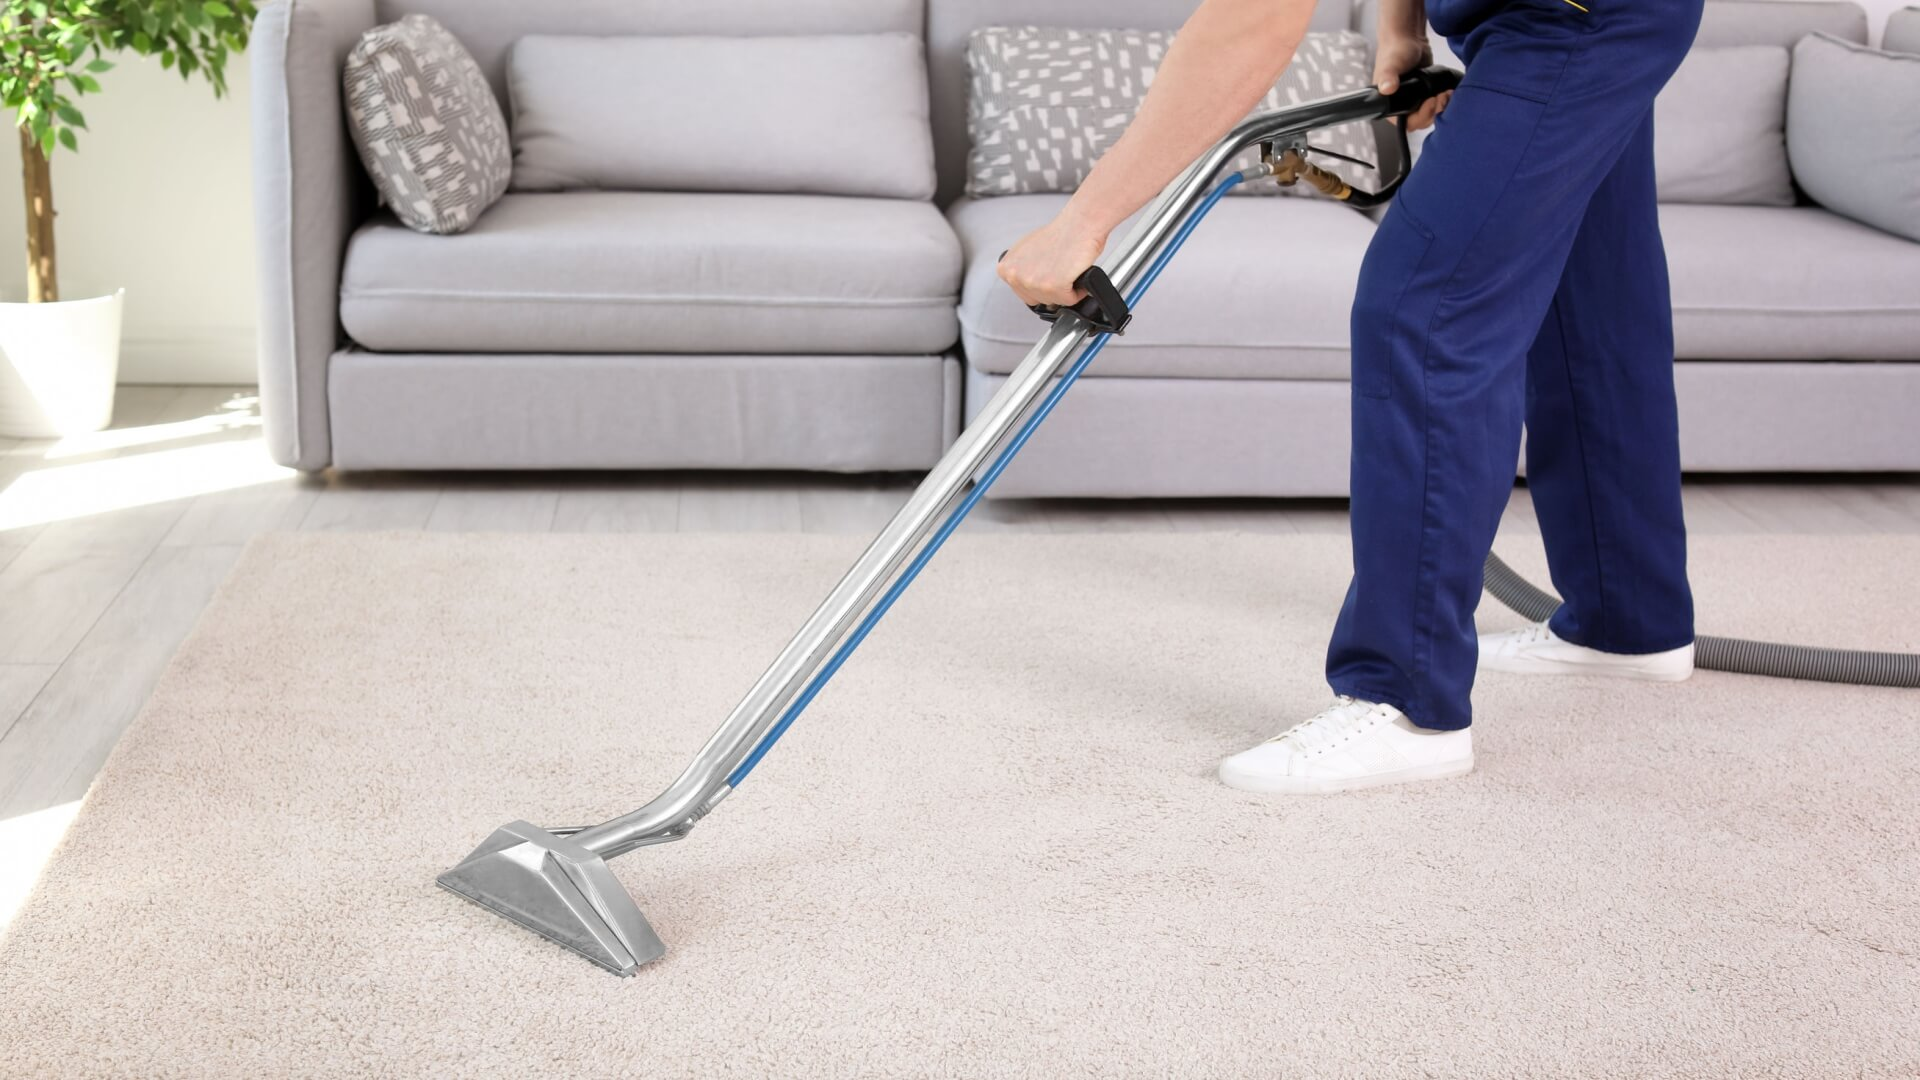 A man cleaning a carpet with a professional carpet cleaner. Deeply removes dirt and stains from a carpet. Carpet cleaner to hire.